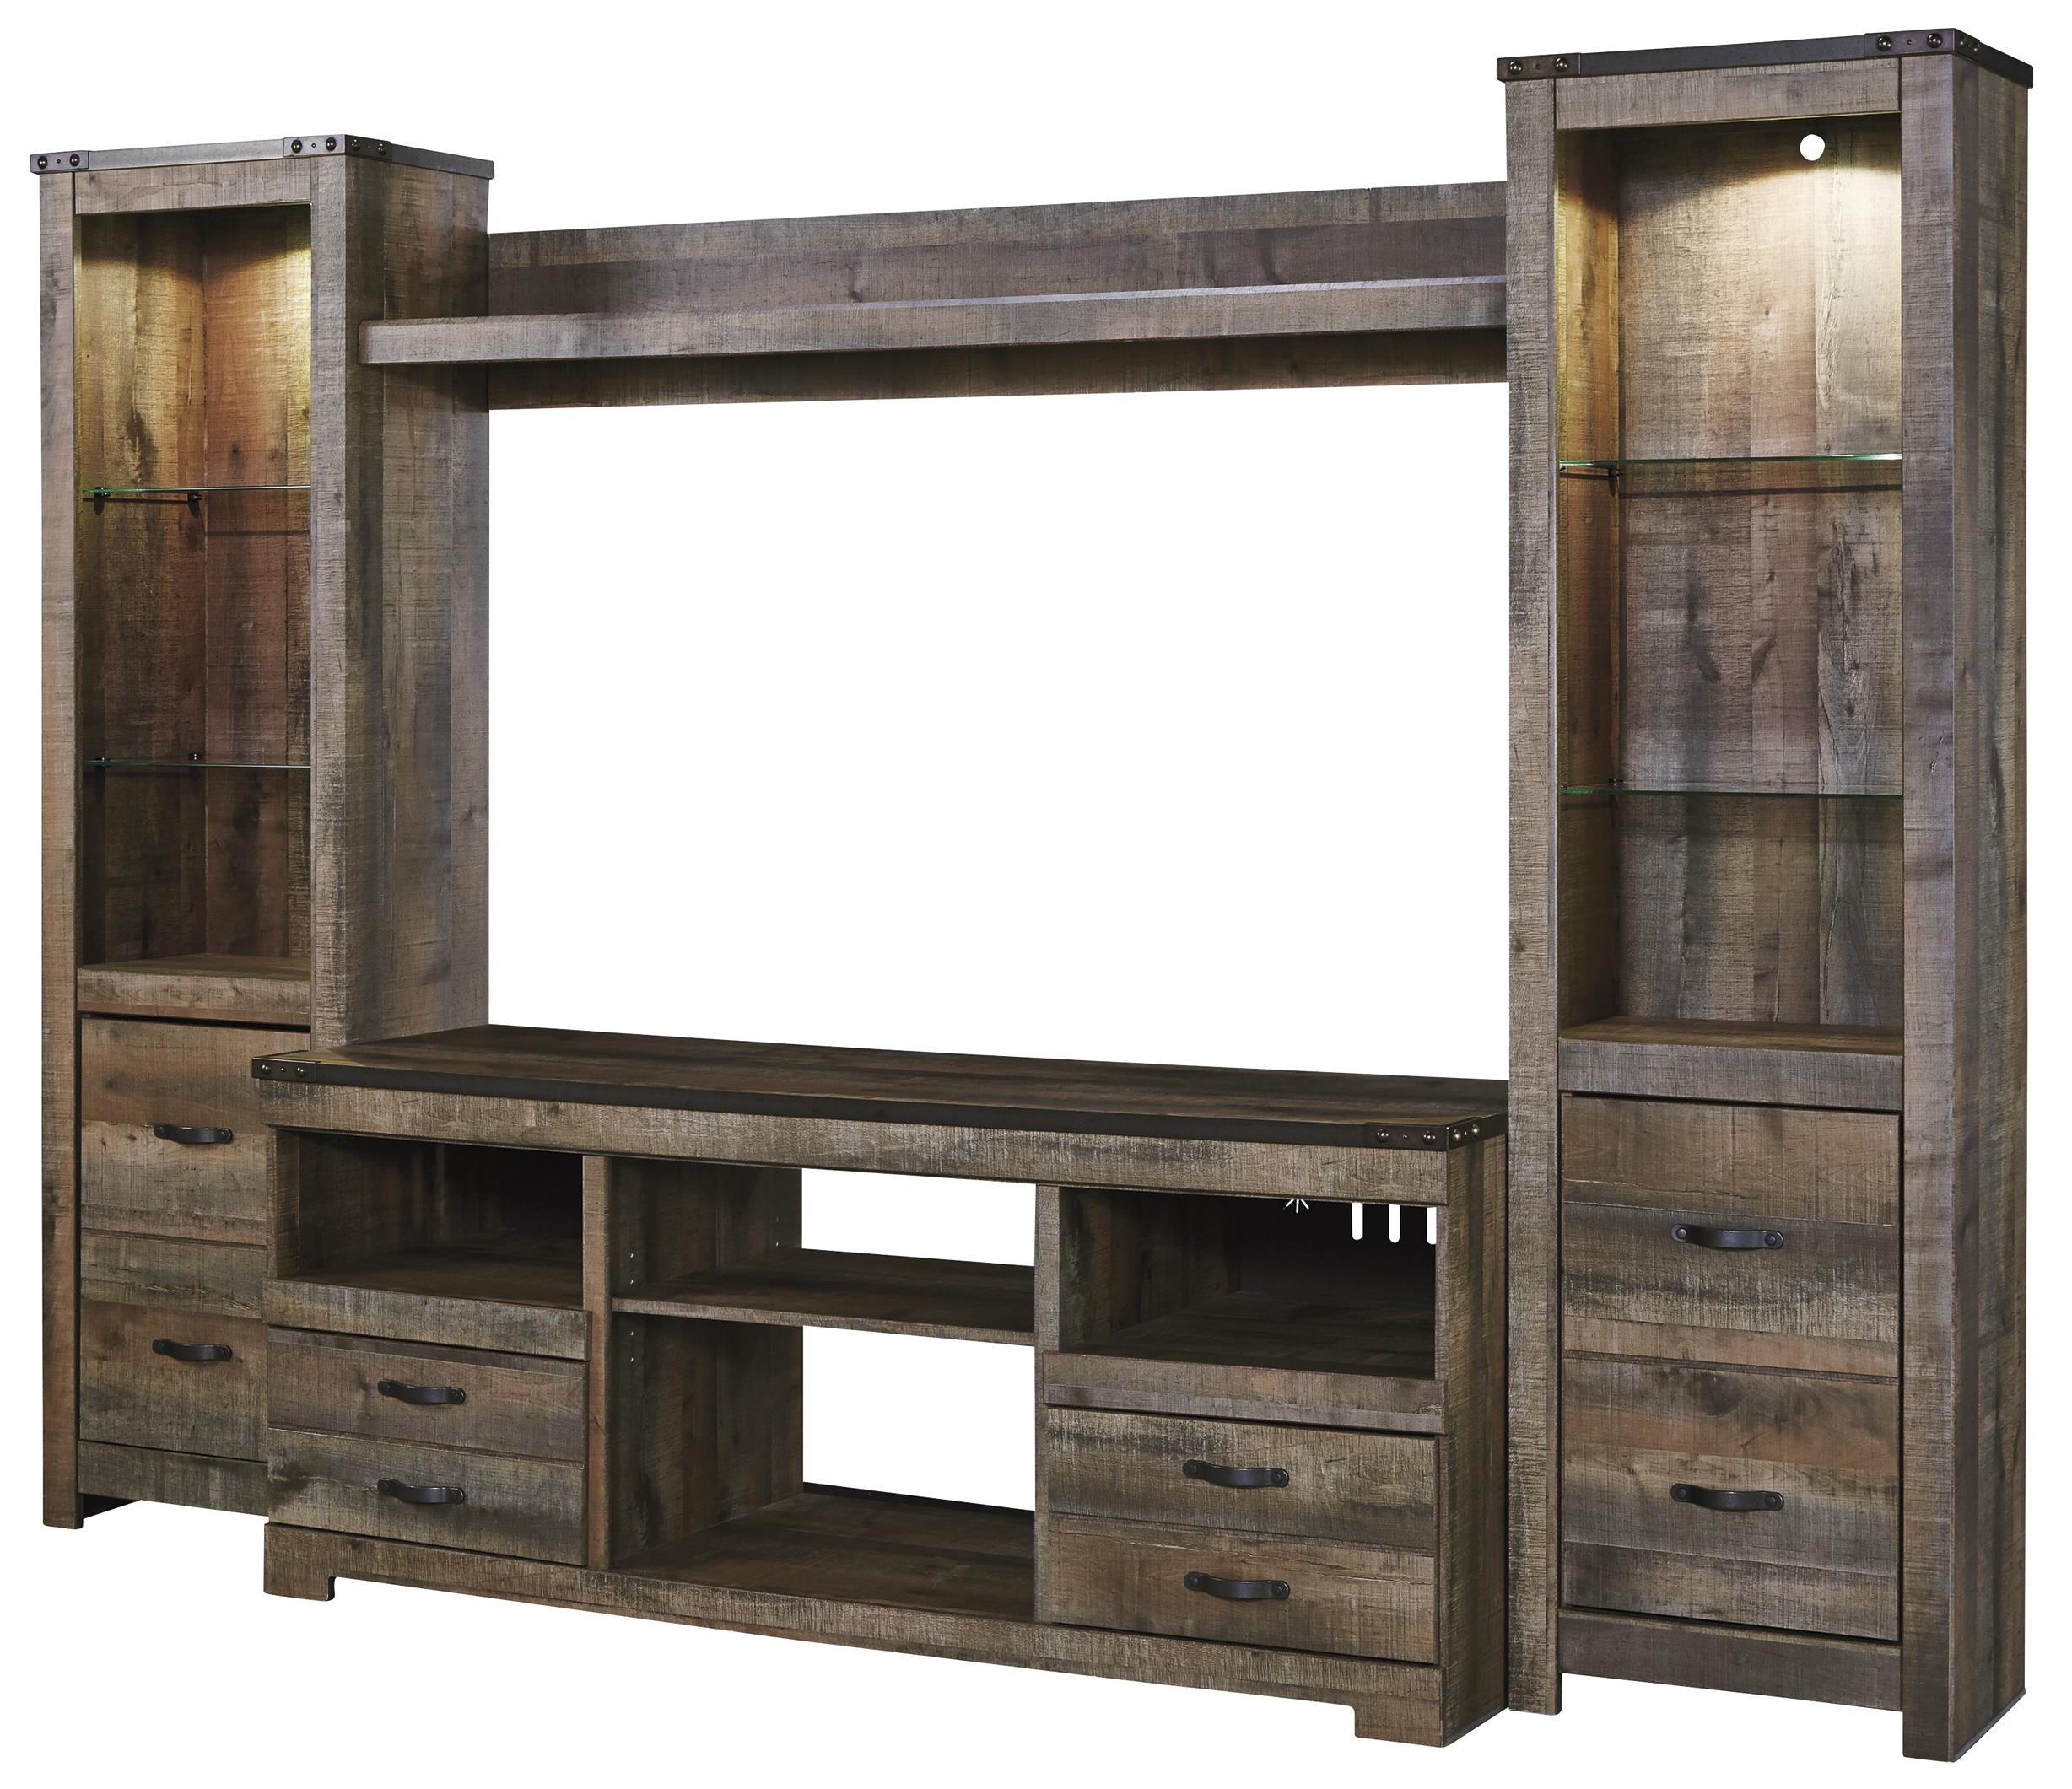 Urban Rustic Rustic Large Tv Stand & 2 Tall Piers W/ Bridge For Most Current Rustic Looking Tv Stands (View 8 of 20)